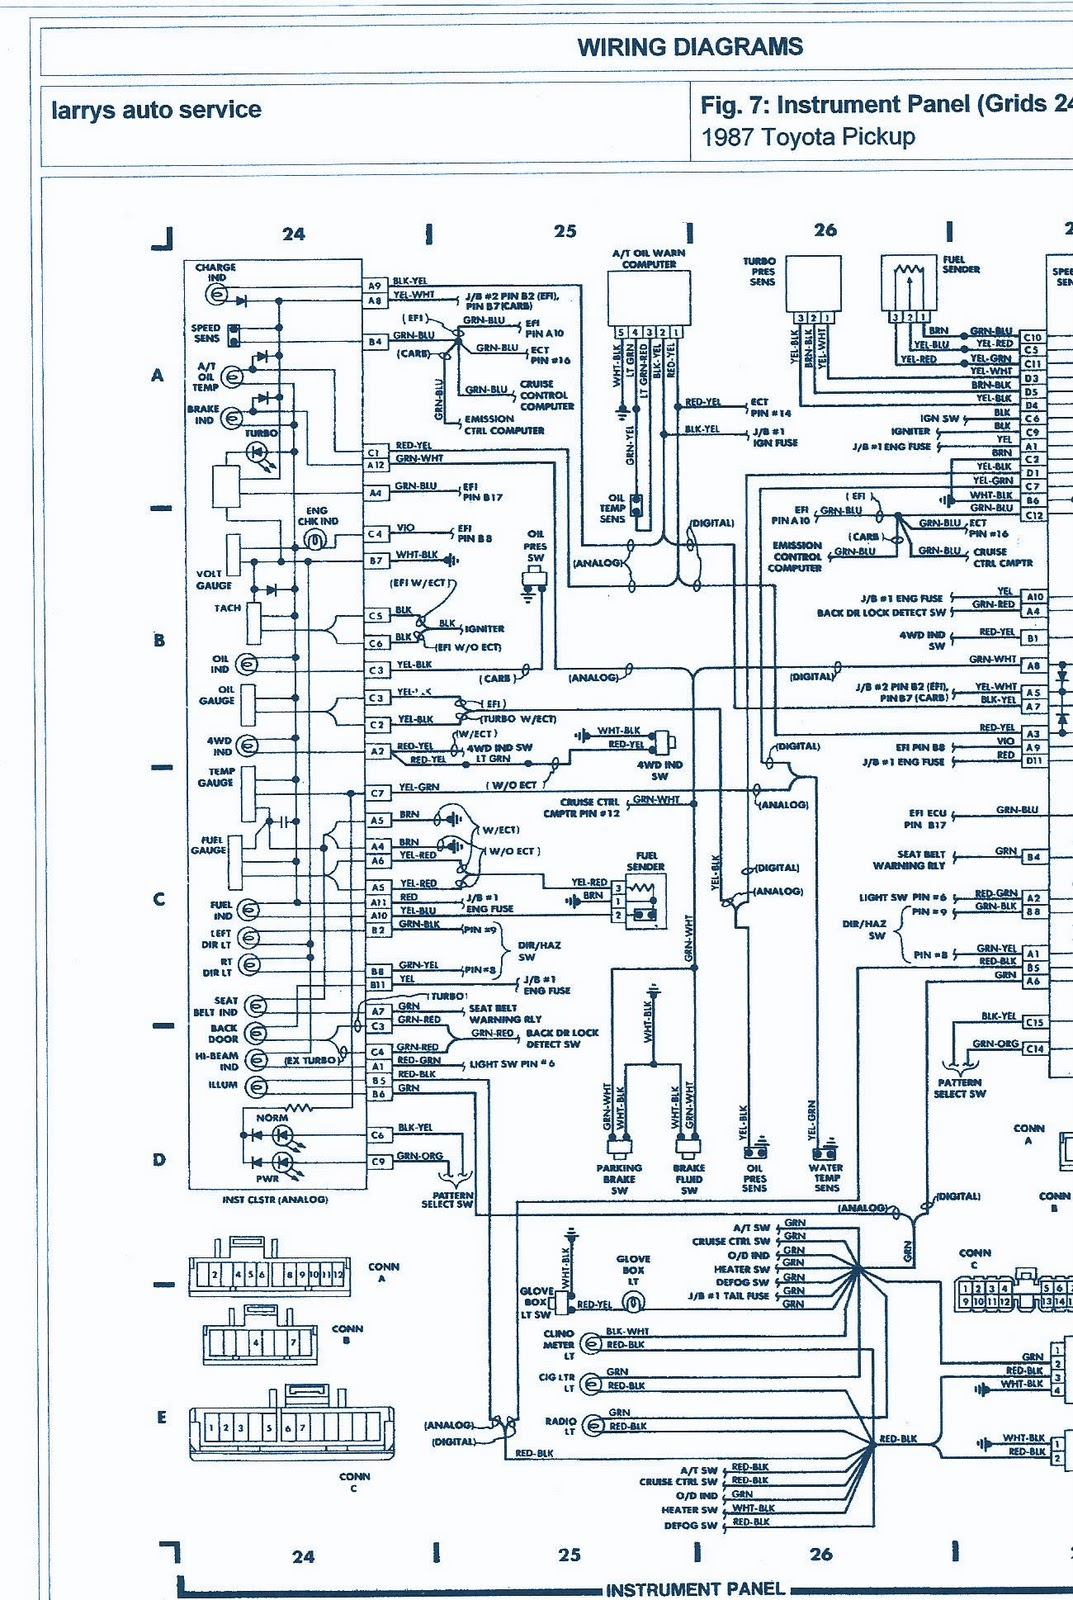 ☑ 1986 Toyota Truck Wiring Diagram HD Quality ☑ general-diagram -shapes.altalangaleader.it